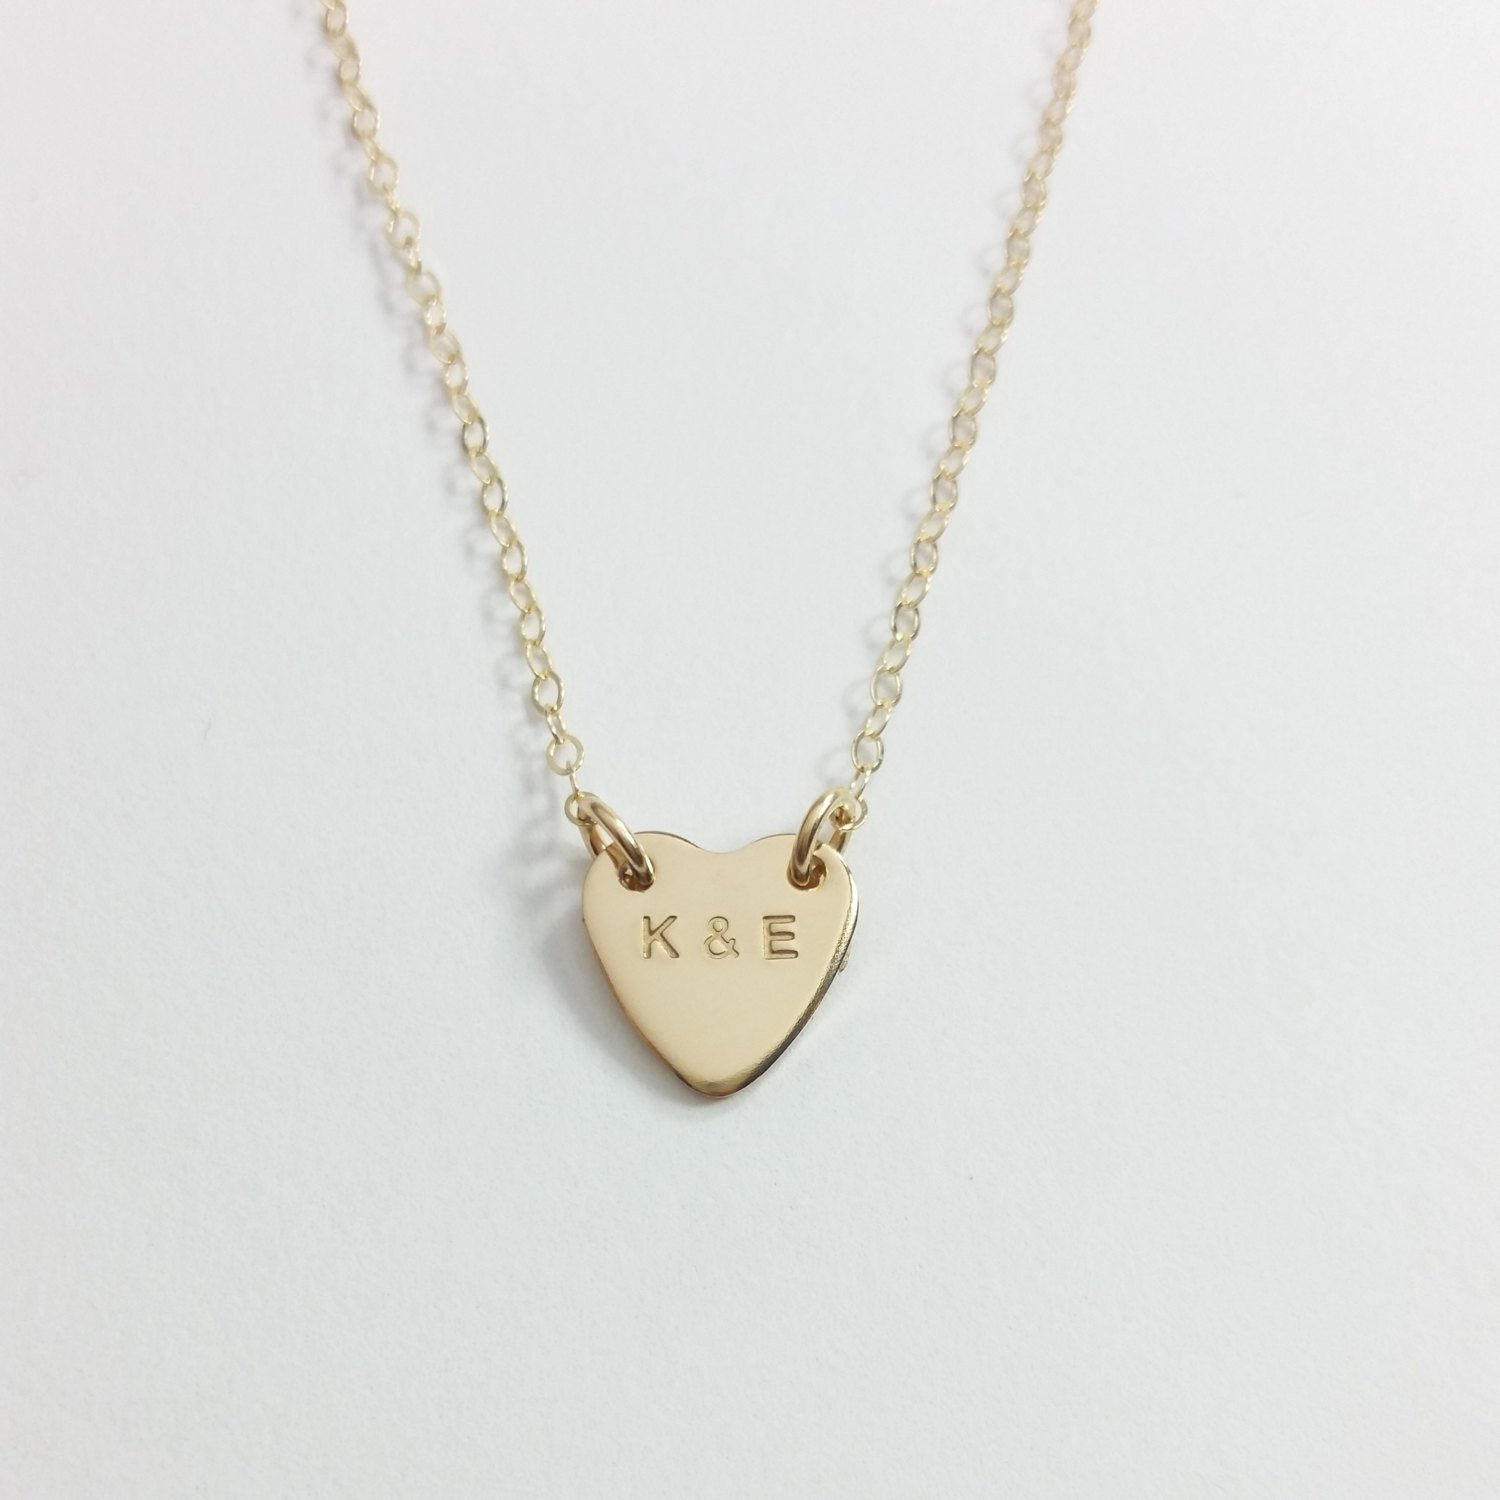 Heart Necklace - Initials necklace, Valentine's day gift, anniversary necklace, rose gold-gold filled-sterling silver, dainty necklace Valentine' s day gift